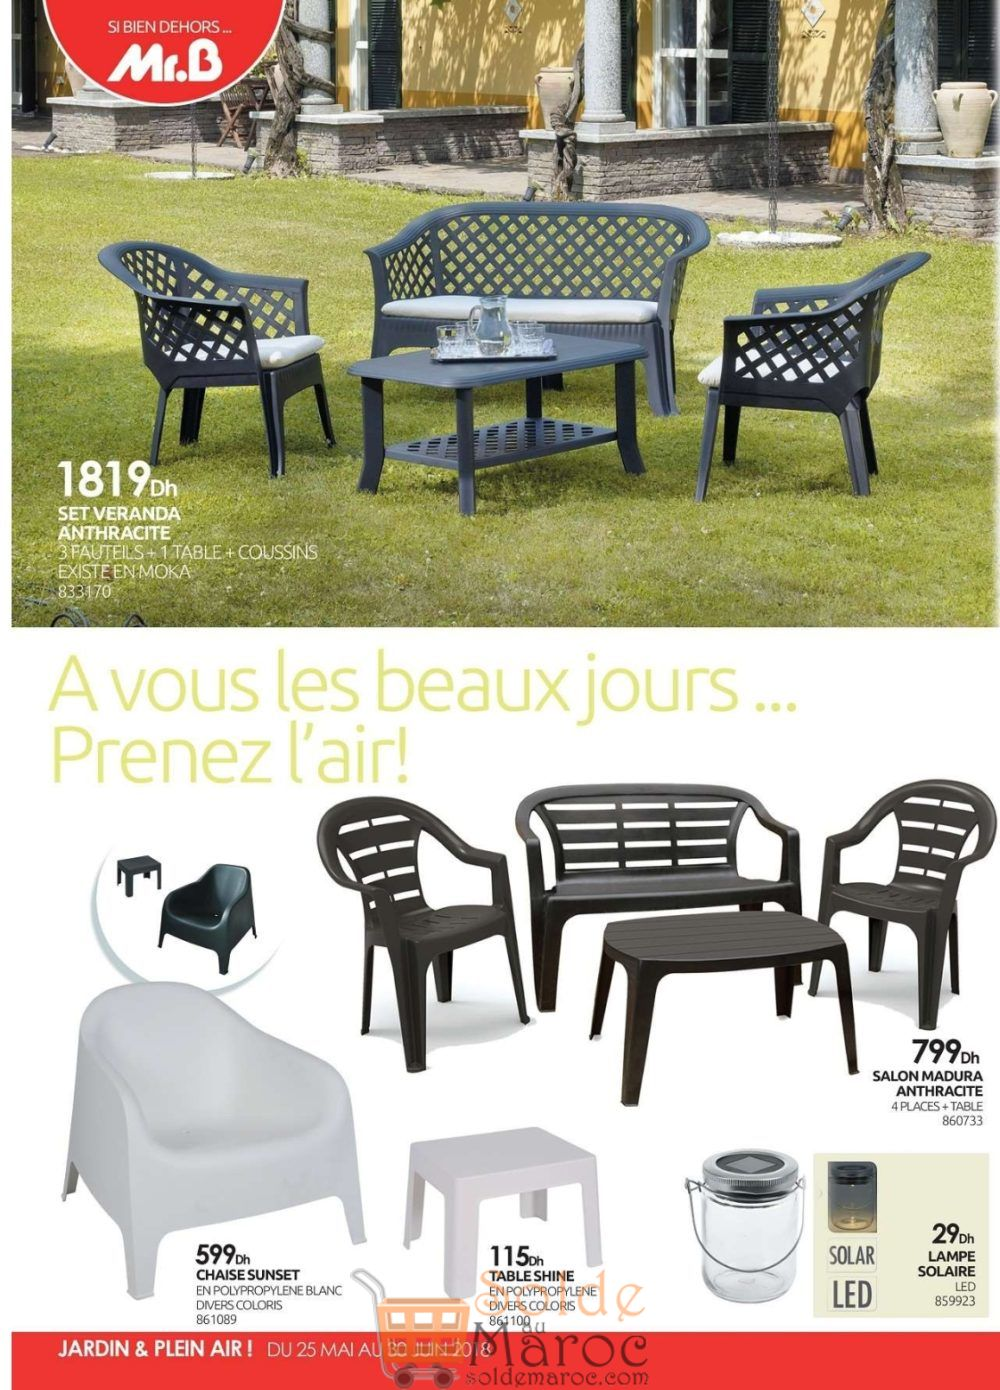 Beautiful Chaise De Jardin Monsieur Bricolage Images - House ...